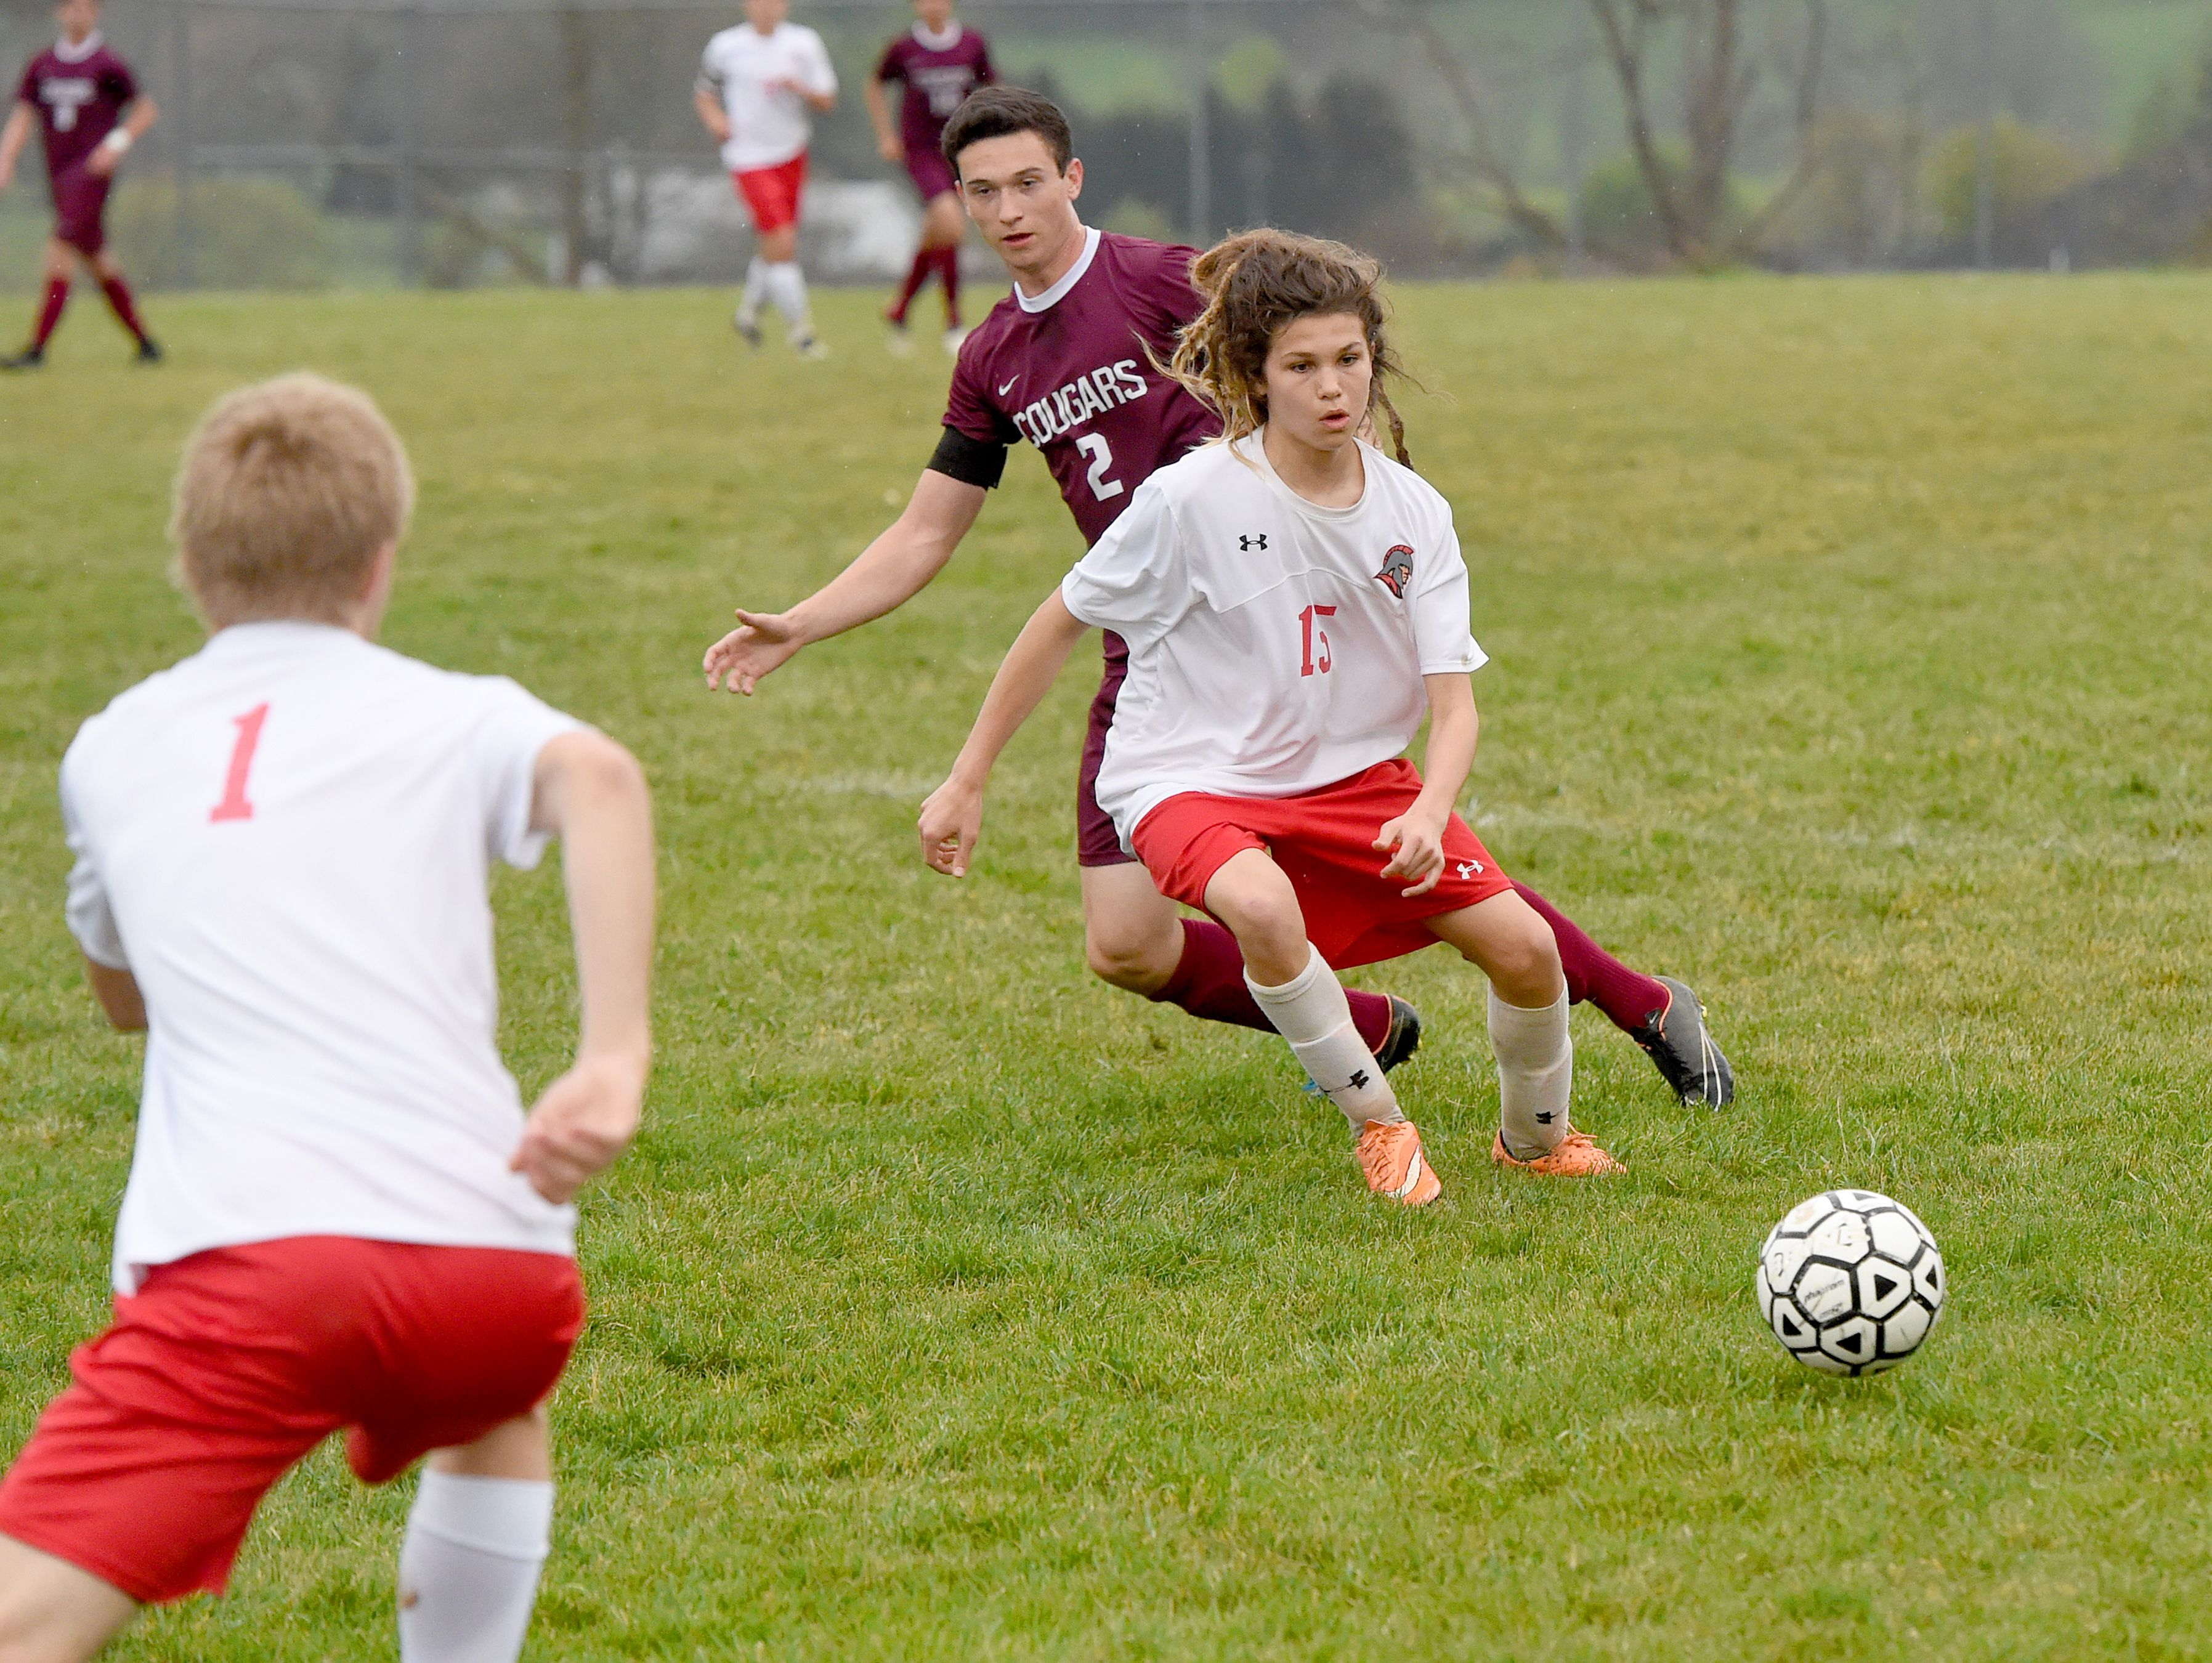 Riverheads' Isaiah Knopp stays between Stuarts Draft's Caleb Oakes and the ball during a soccer game played in Greenville on Friday, April 22, 2016.